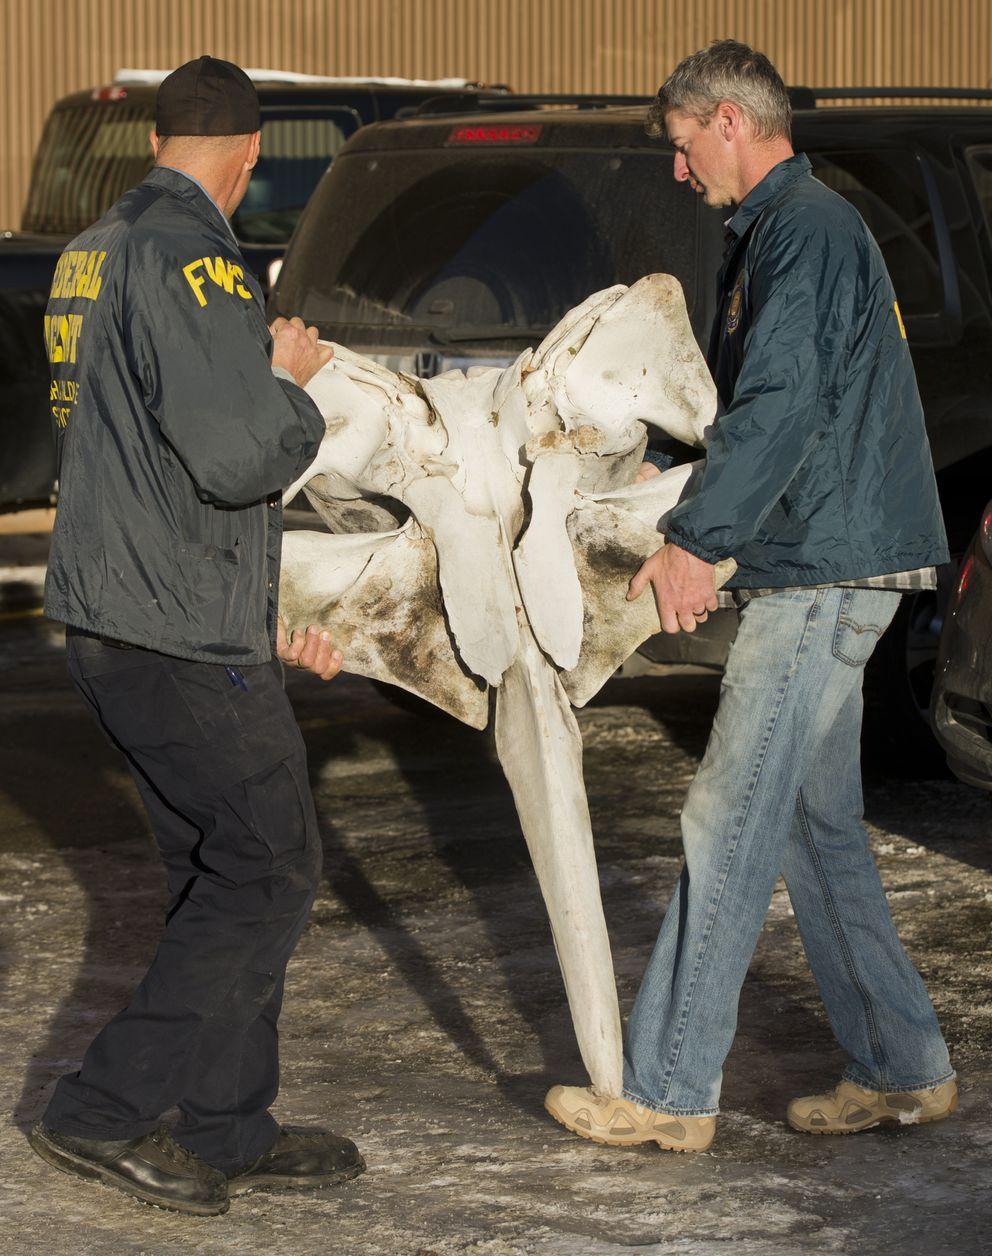 U.S. Fish and Wildlife law enforcement officers and agents removed whale bones, baleen, walrus ivories and other items from The Antique Gallery on Nov. 7, 2017. (Marc Lester / ADN archive)